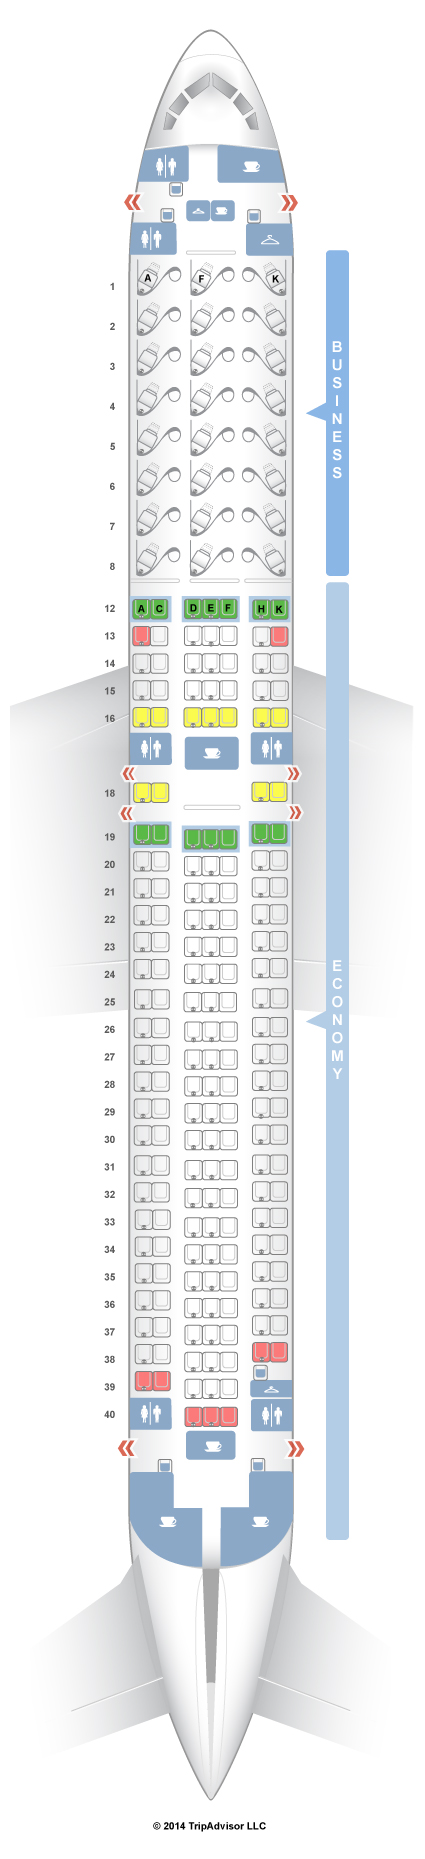 SeatGuru Seat Map Air Canada Boeing 767300ER (763) V1